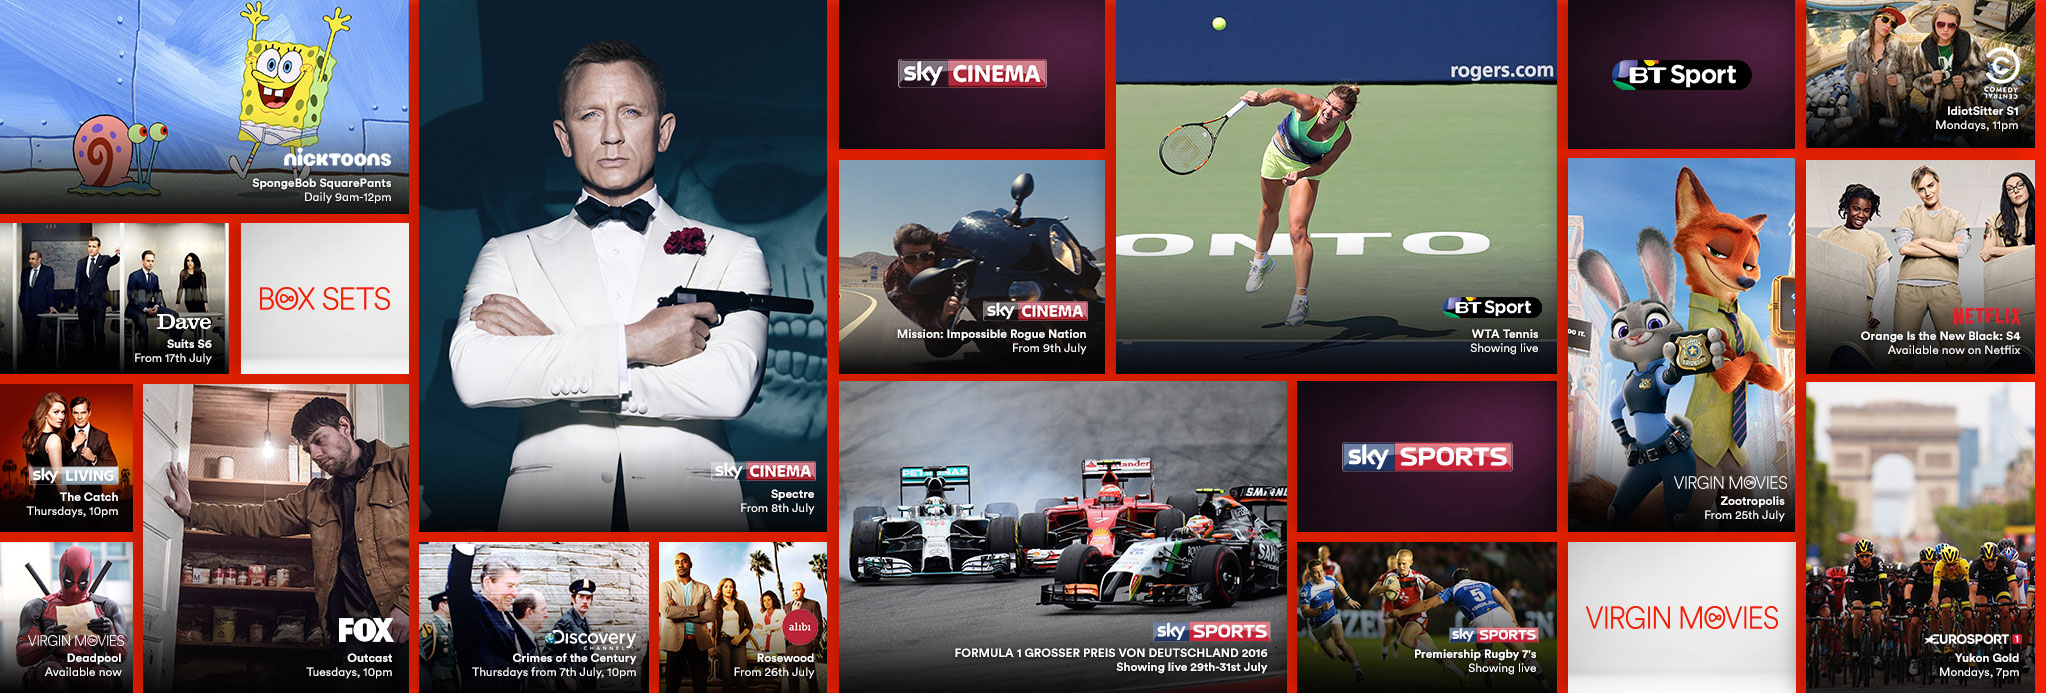 Gallery showing the live TV, catch up and on demand shows available with VIP